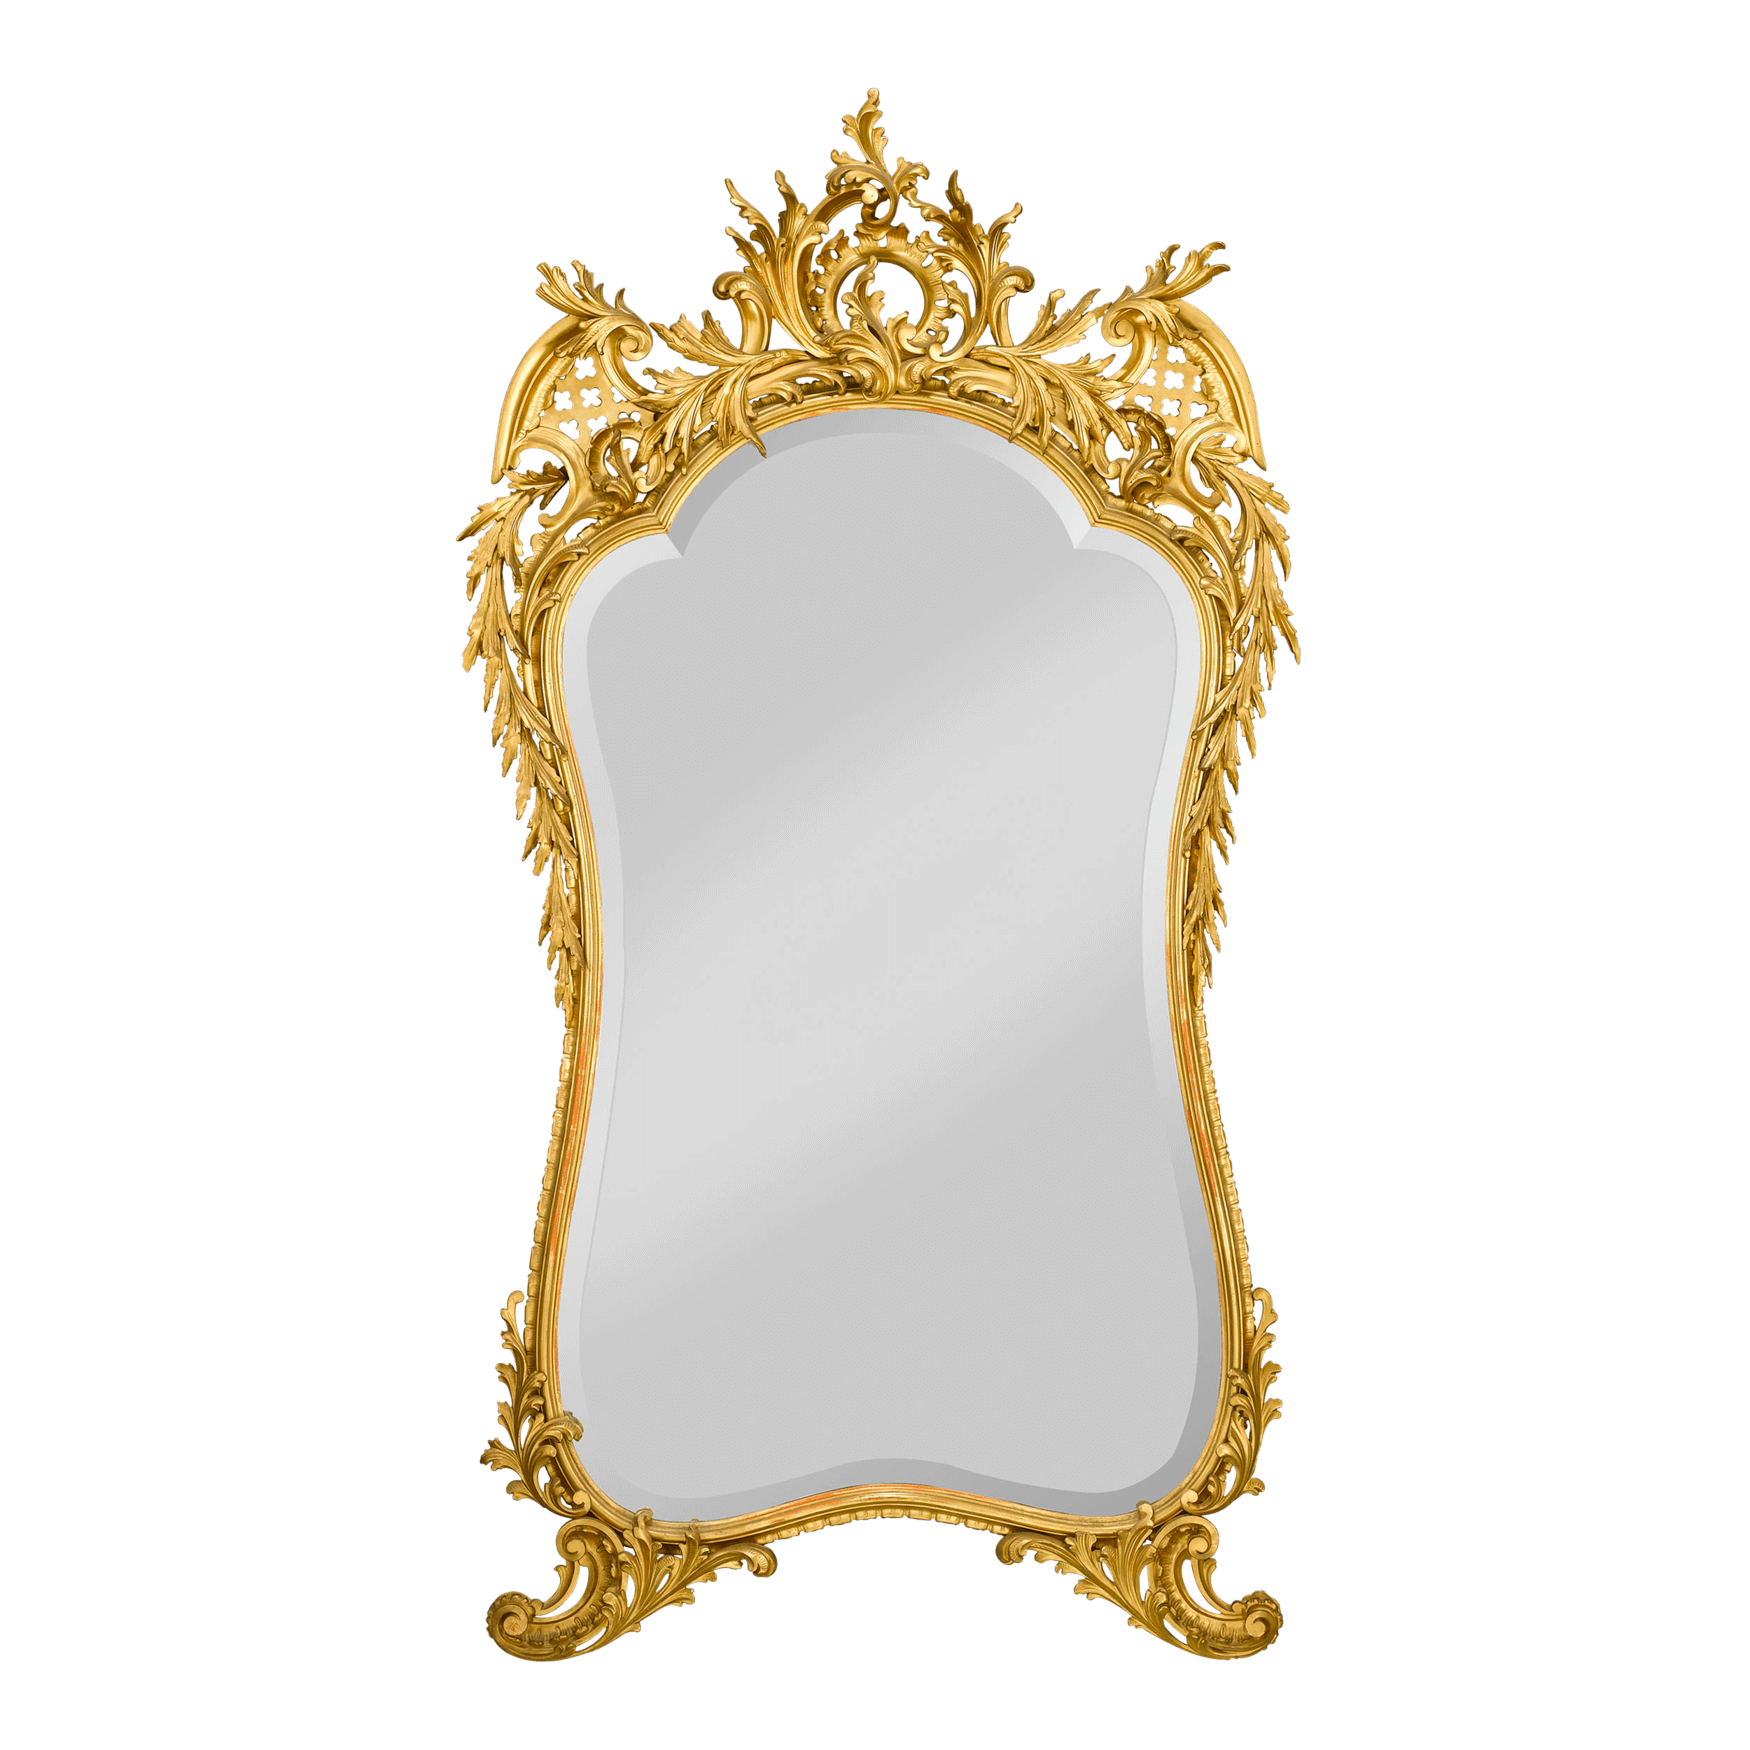 antique mirror french gold leaf beveled glass rococo #26362